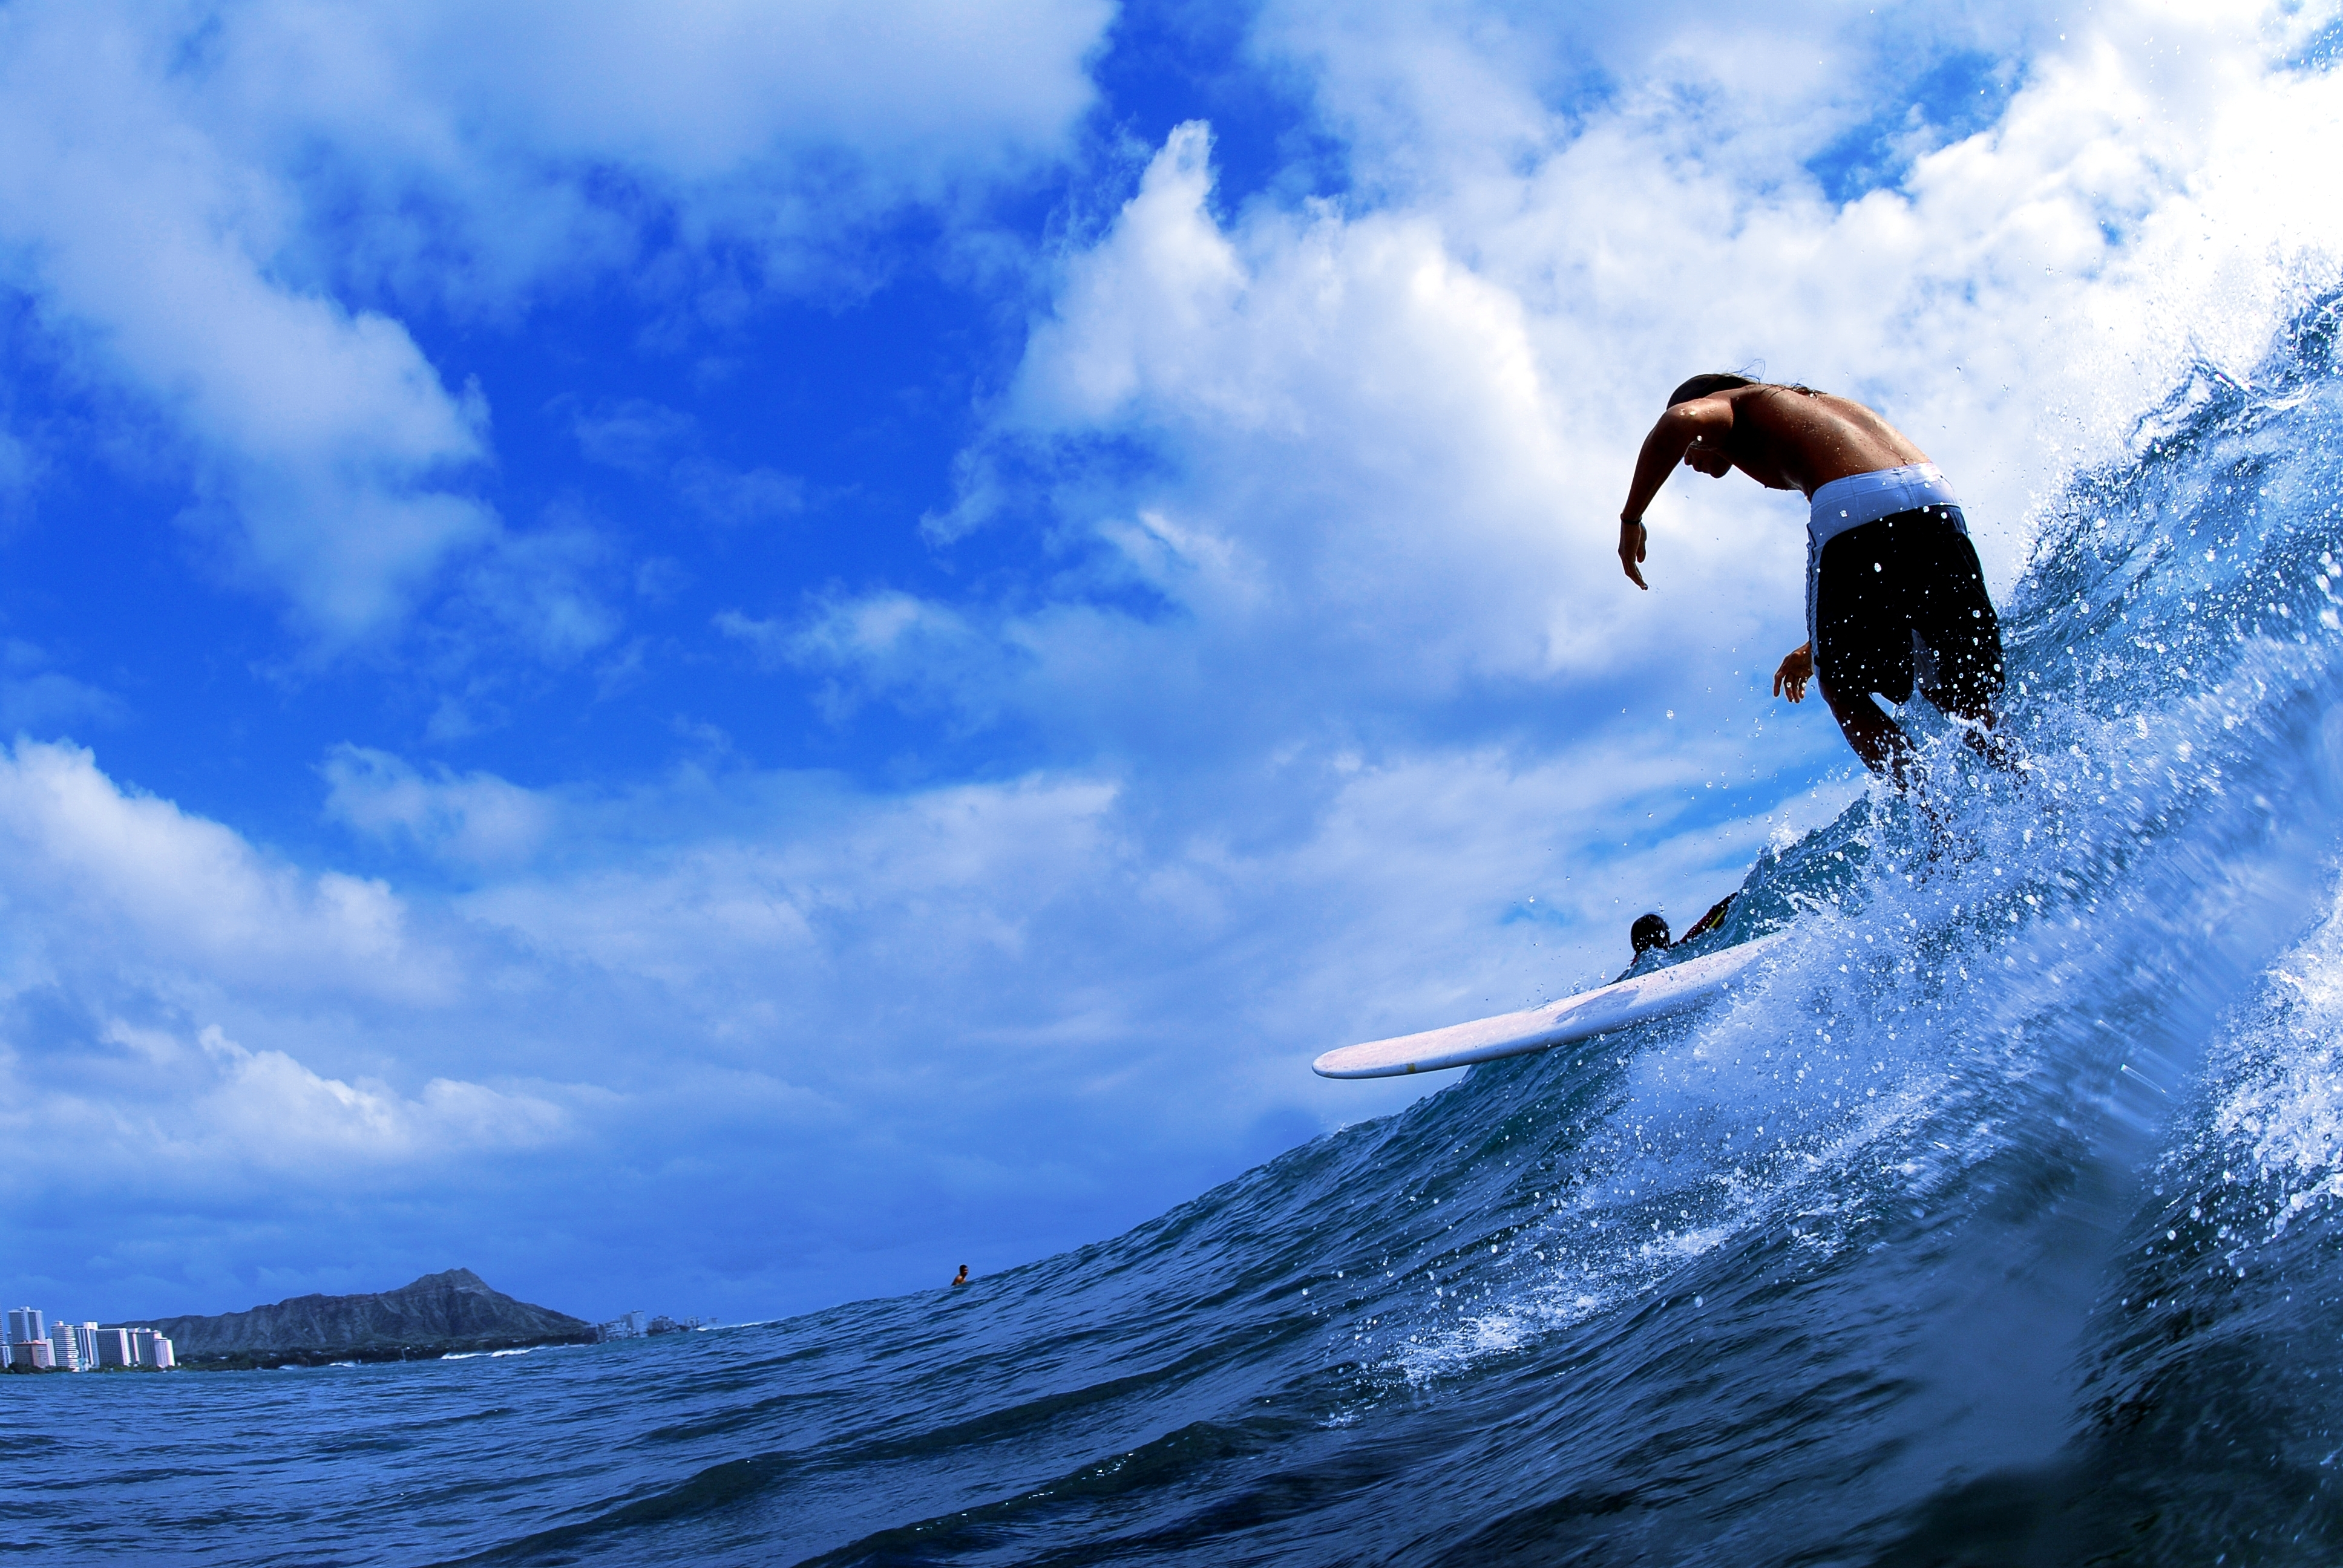 125404 Screensavers and Wallpapers Guy for phone. Download Sports, Sea, Clouds, Spray, Guy, Wave, Surfing pictures for free